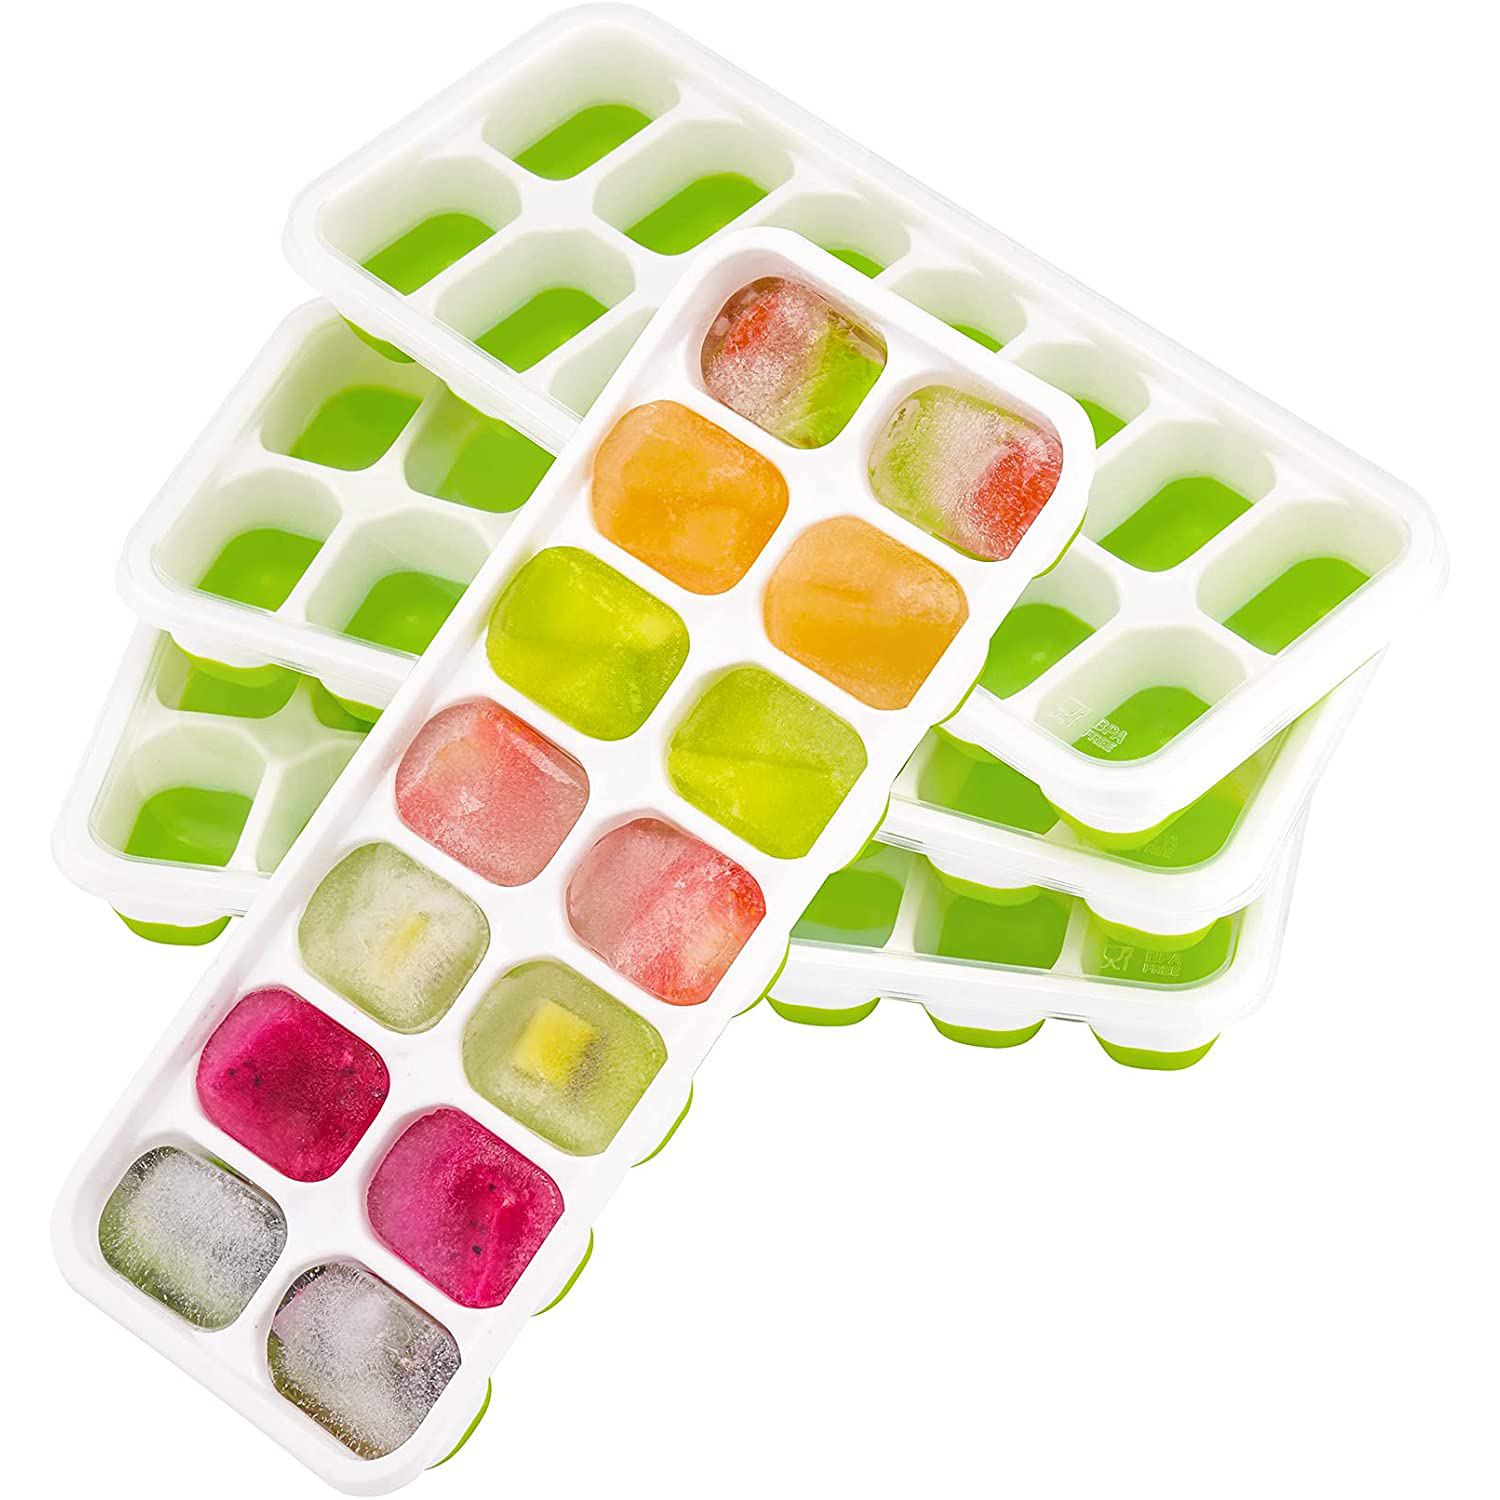 OMORC Ice Cube Trays filled with a variety of colored liquid